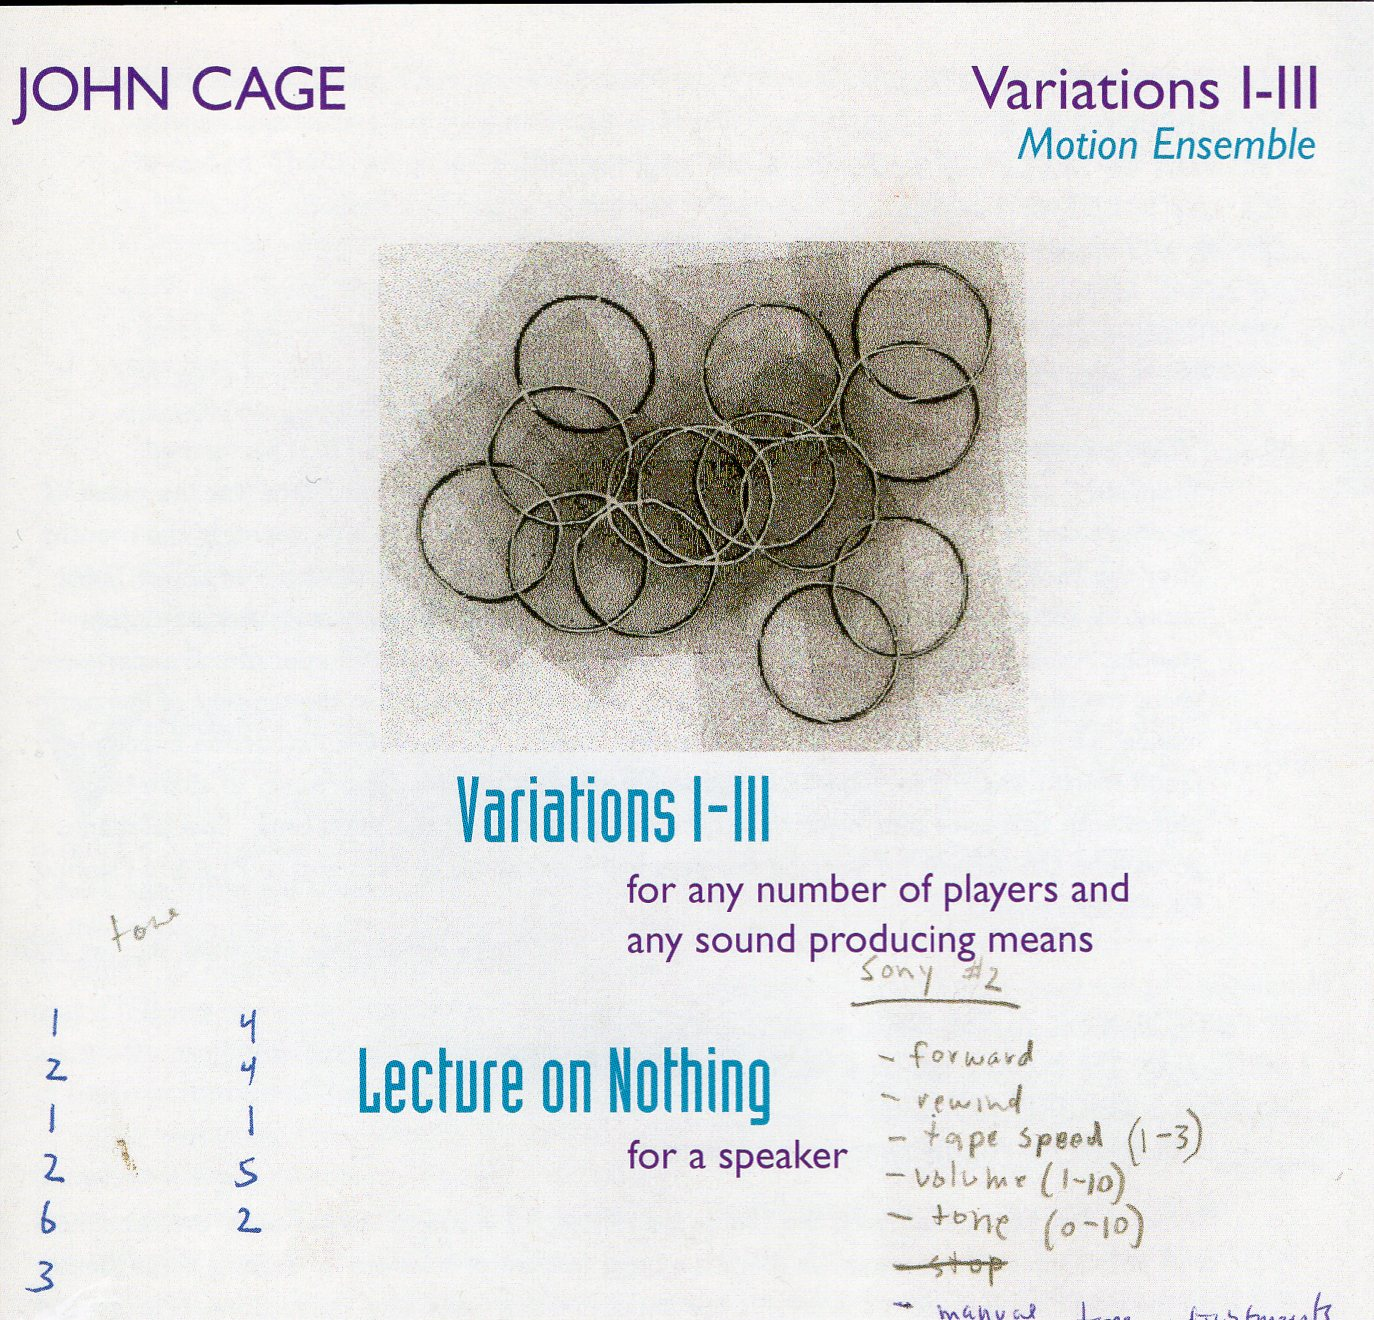 lecture on nothingness john cage essay Nothingness does not itself have being, yet it is supported by being it comes into the world by the for-itself and is the recoil from fullness of self-contained because consciousness exists as consciousness by making a nothingness arise between consciousness and the object of which it is consciousness.